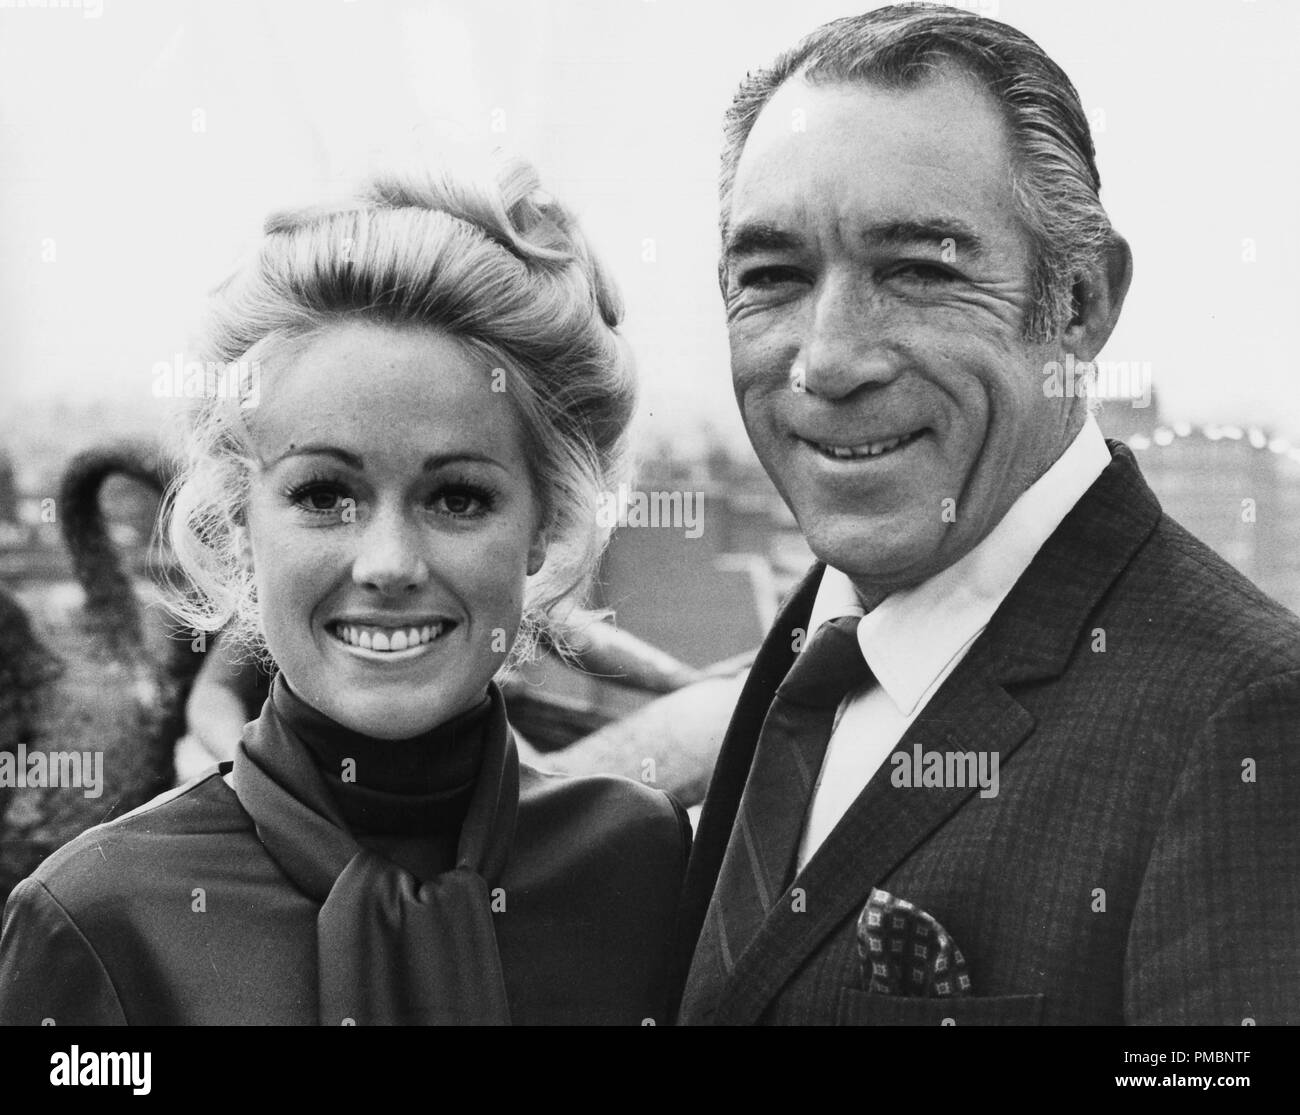 Jan Daley And Anthony Quinn In London 1970 Jrc The Hollywood Archive All Rights Reserved File Reference 32603 056tha